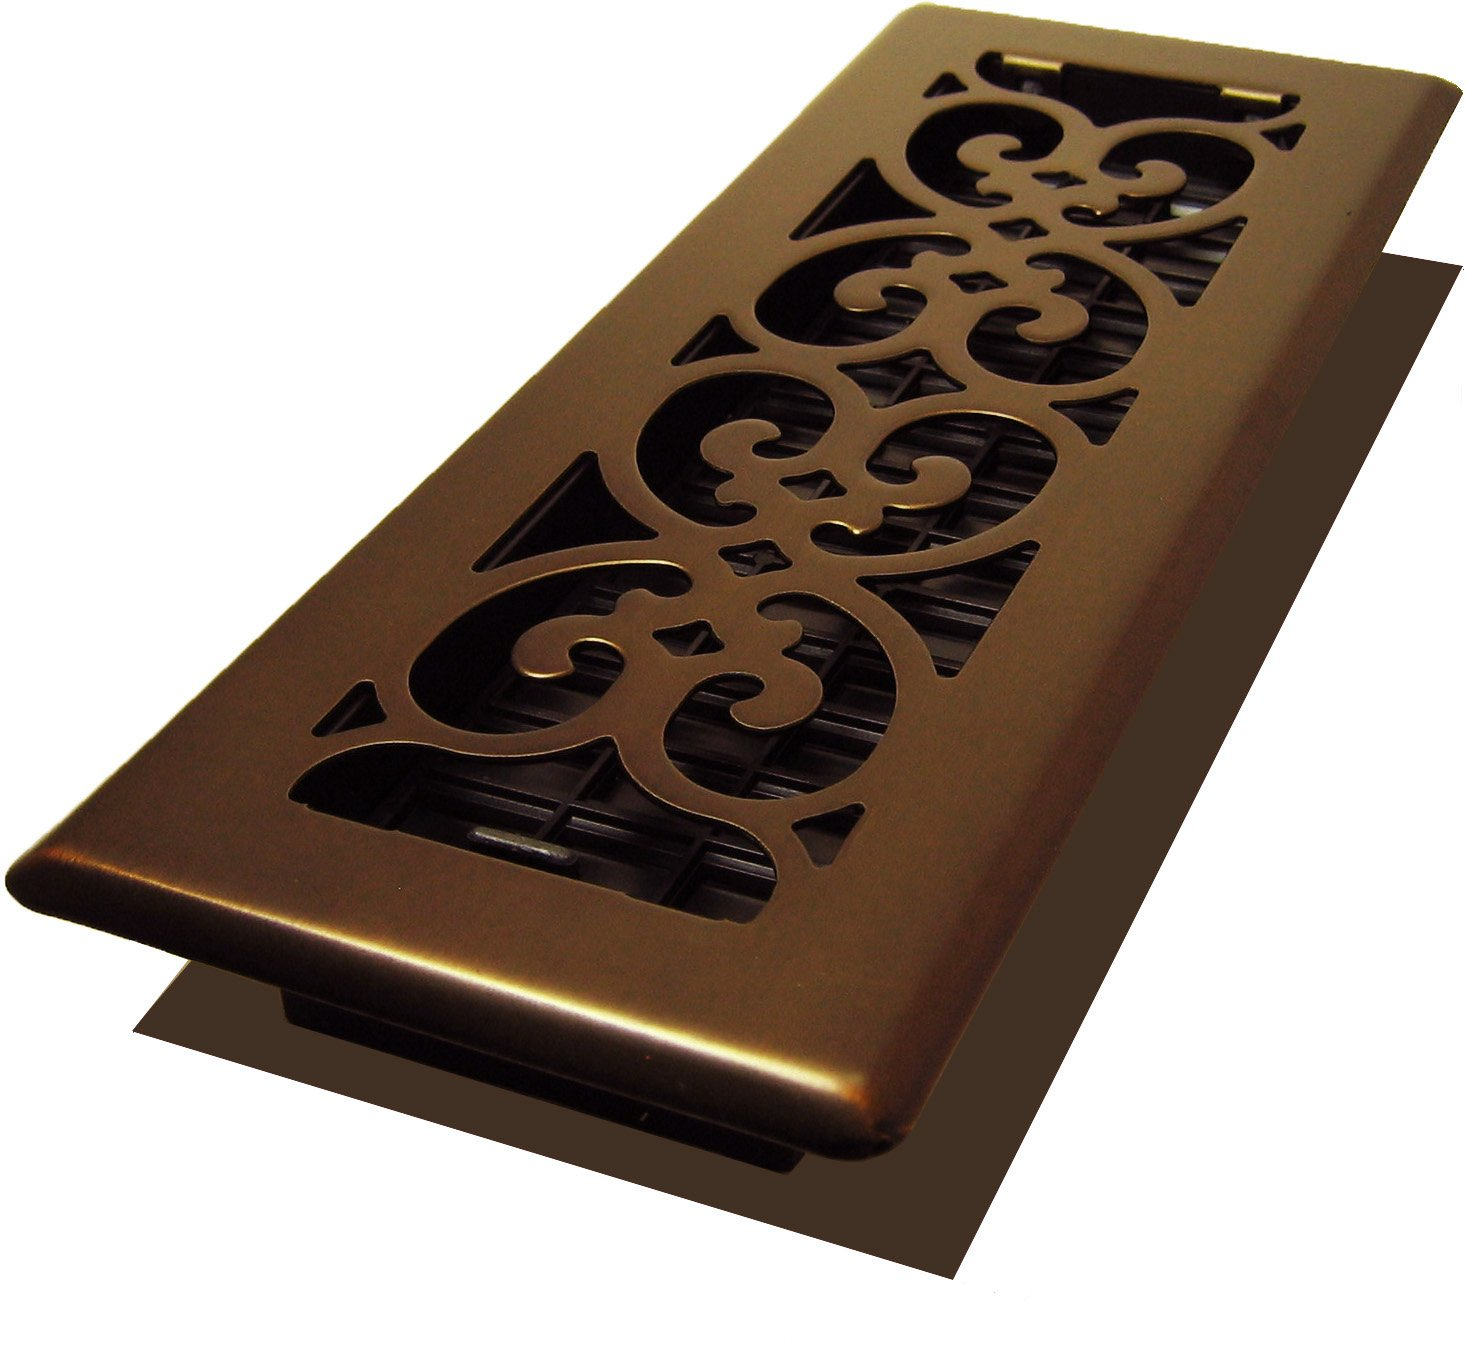 Decor Grates SPH310-RB Scroll Plated Register, 3-Inch by 10-Inch, Rubbed Bronze by Decor Grates